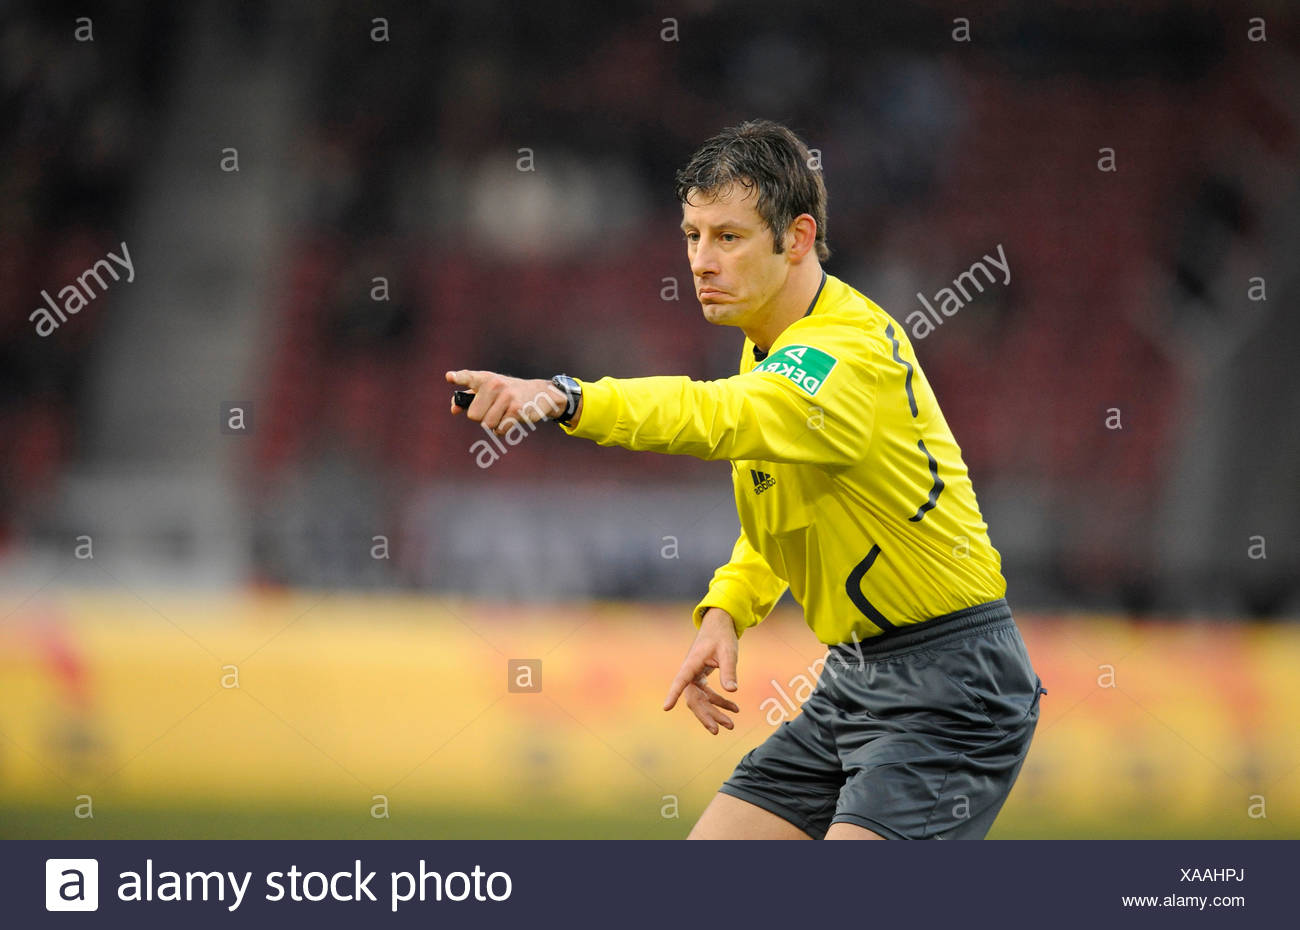 Wolfgang Stark, German football referee, indicating to play on - Stock Image